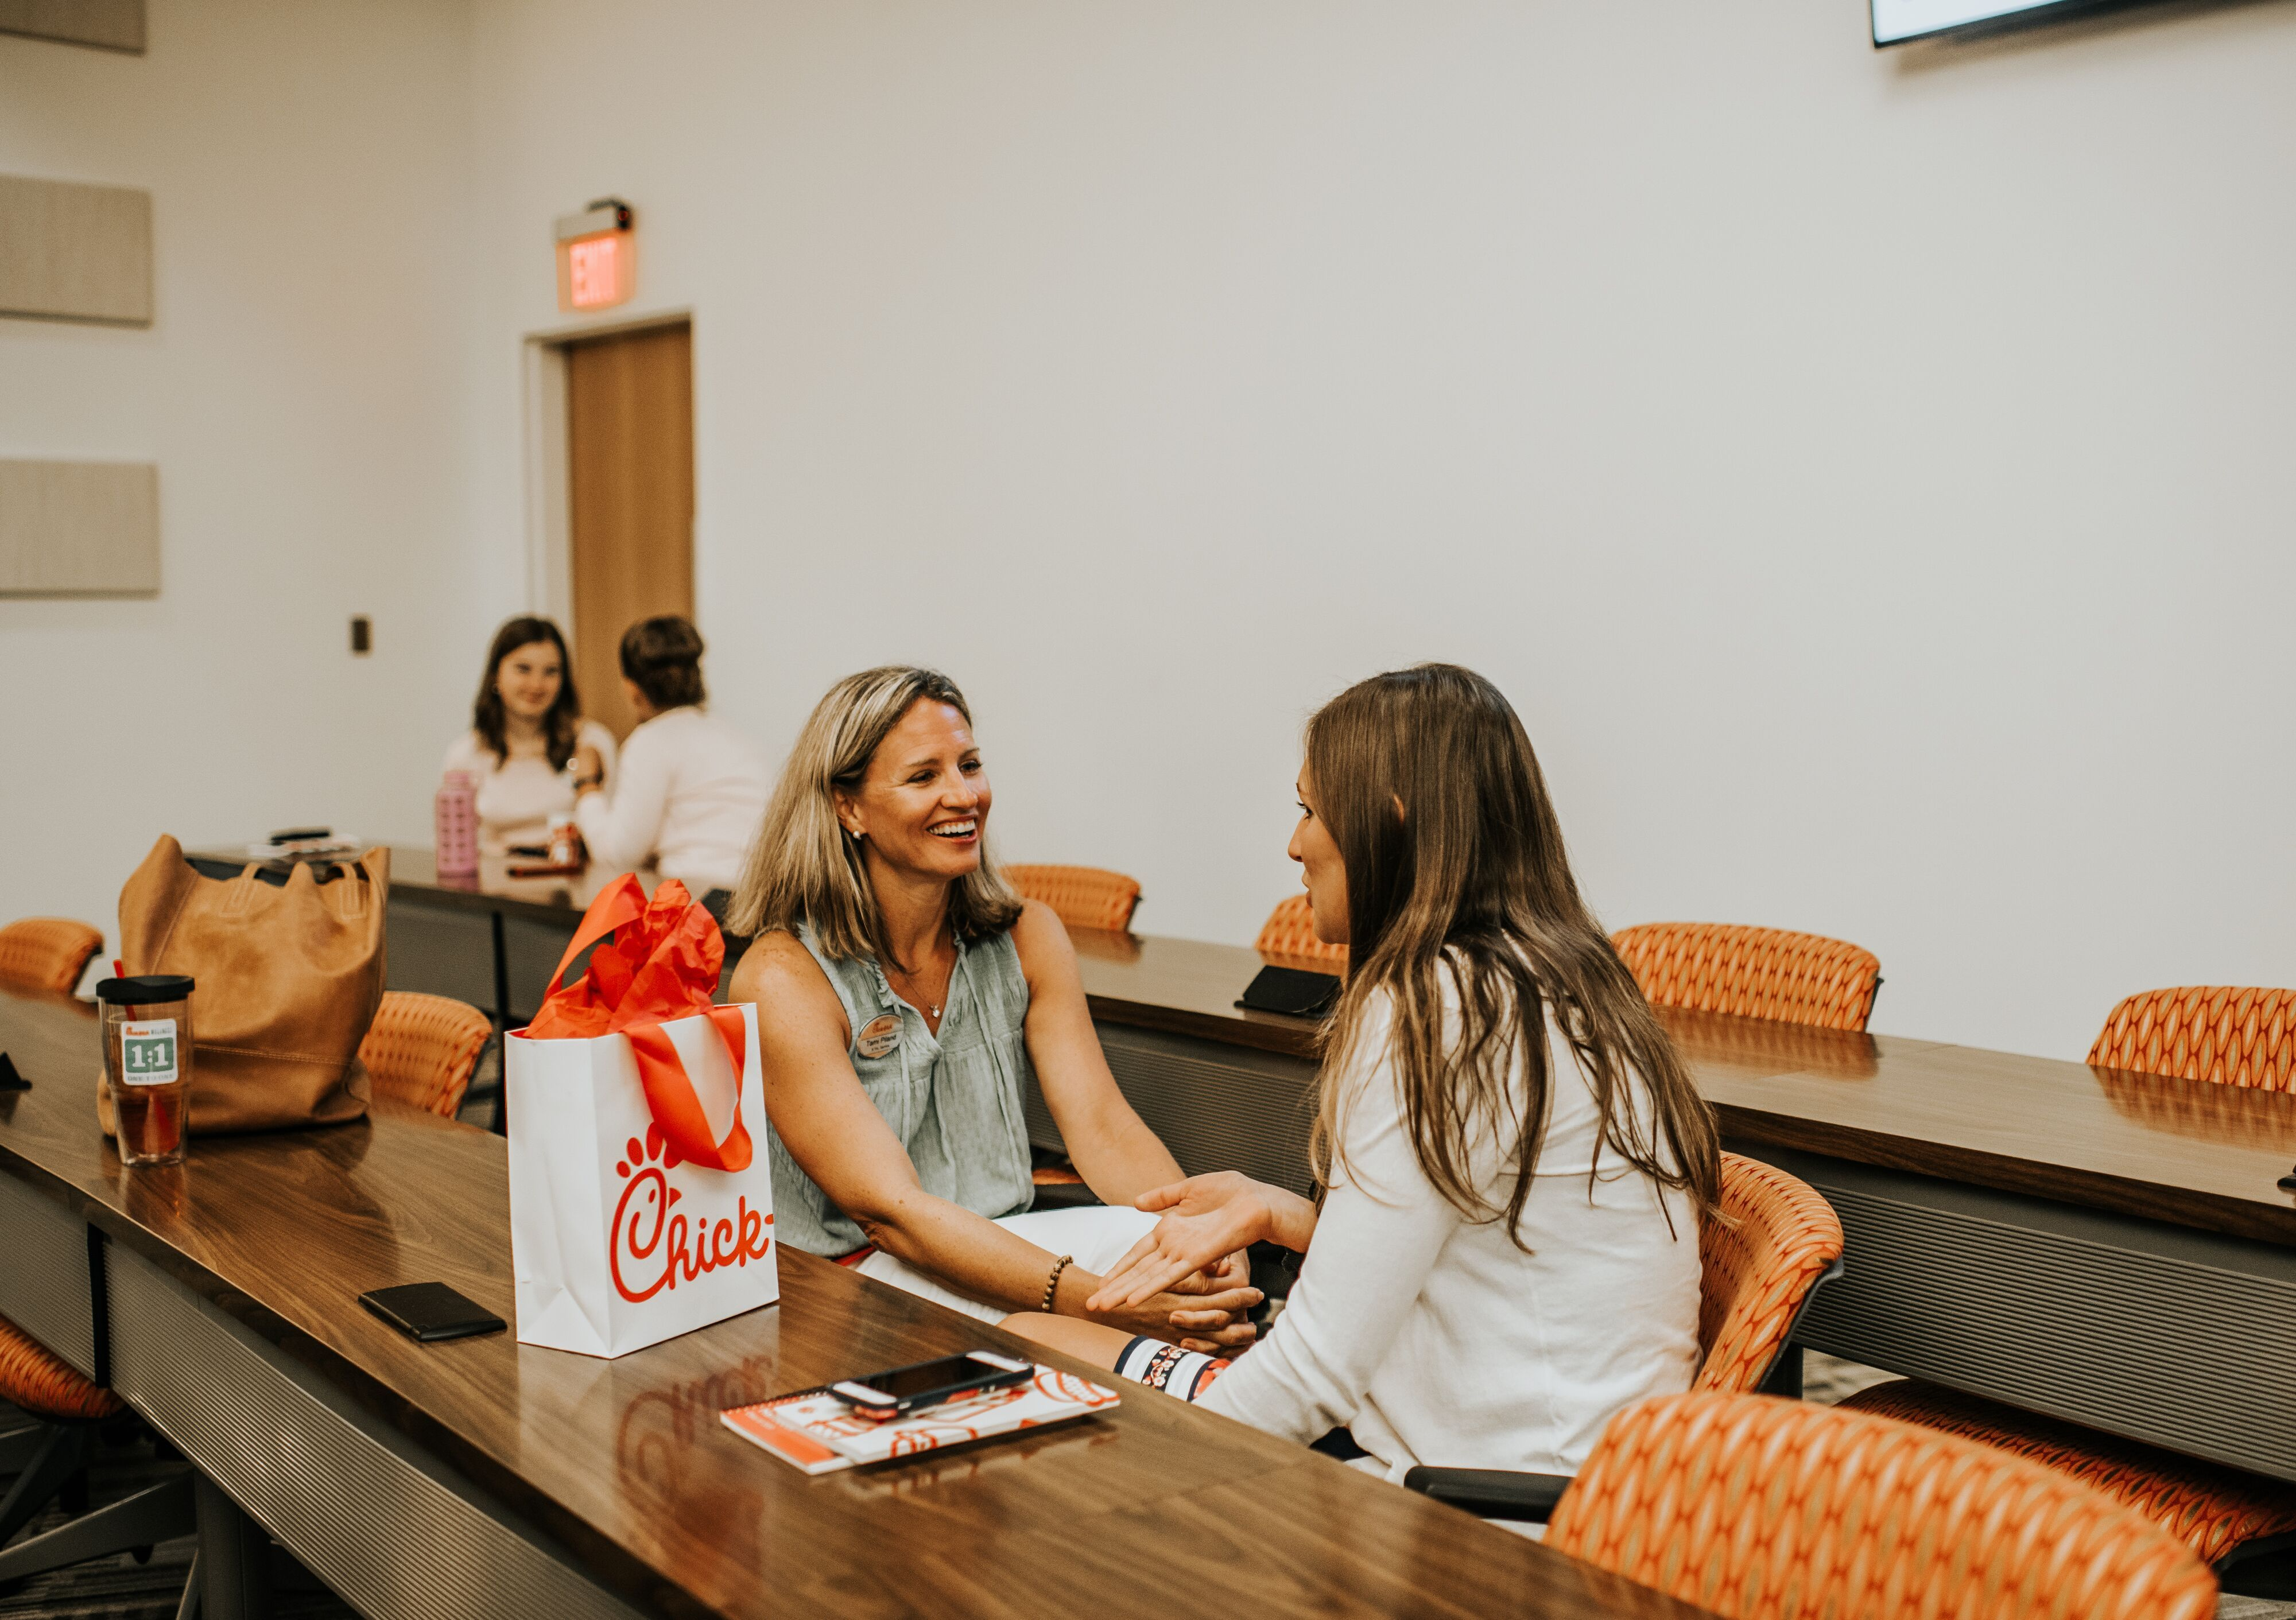 2020 Chick-fil-A Fellow, Kaitlyn Ashcraft, meets her Chick-fil-A mentor, Tami Piland.